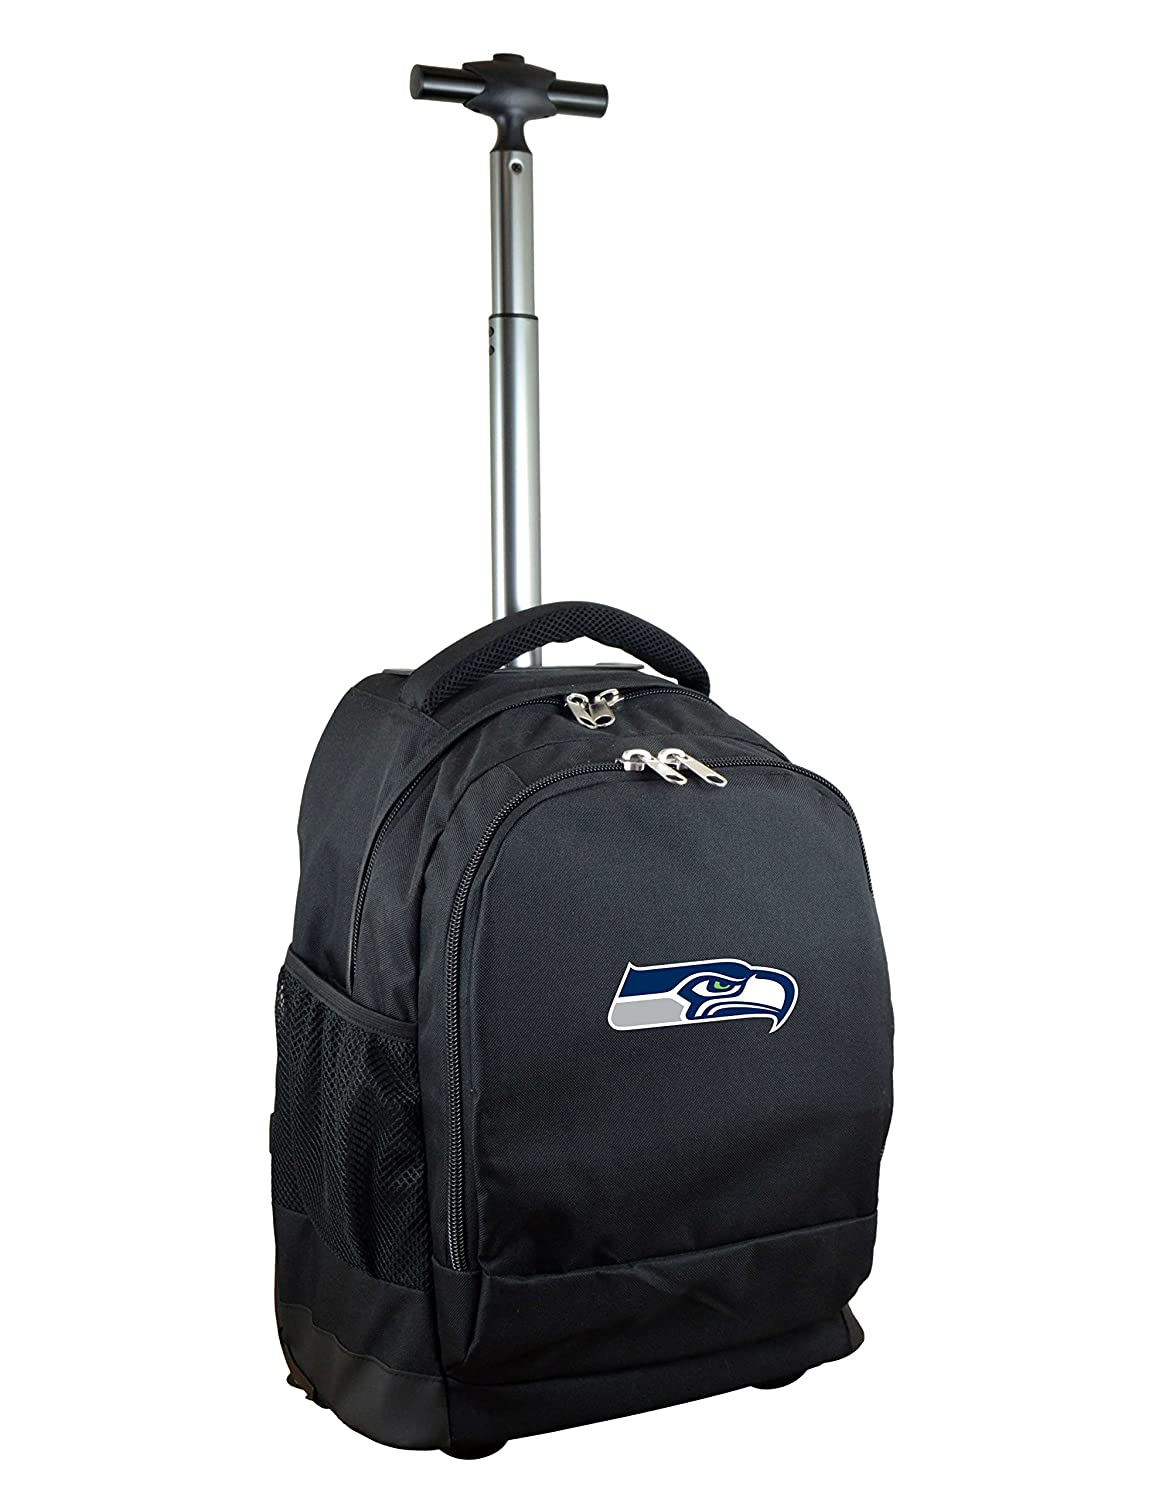 (Seattle Seahawks) - NFL Expedition Wheeled Backpack, 48cm , Black B01M74RIN2